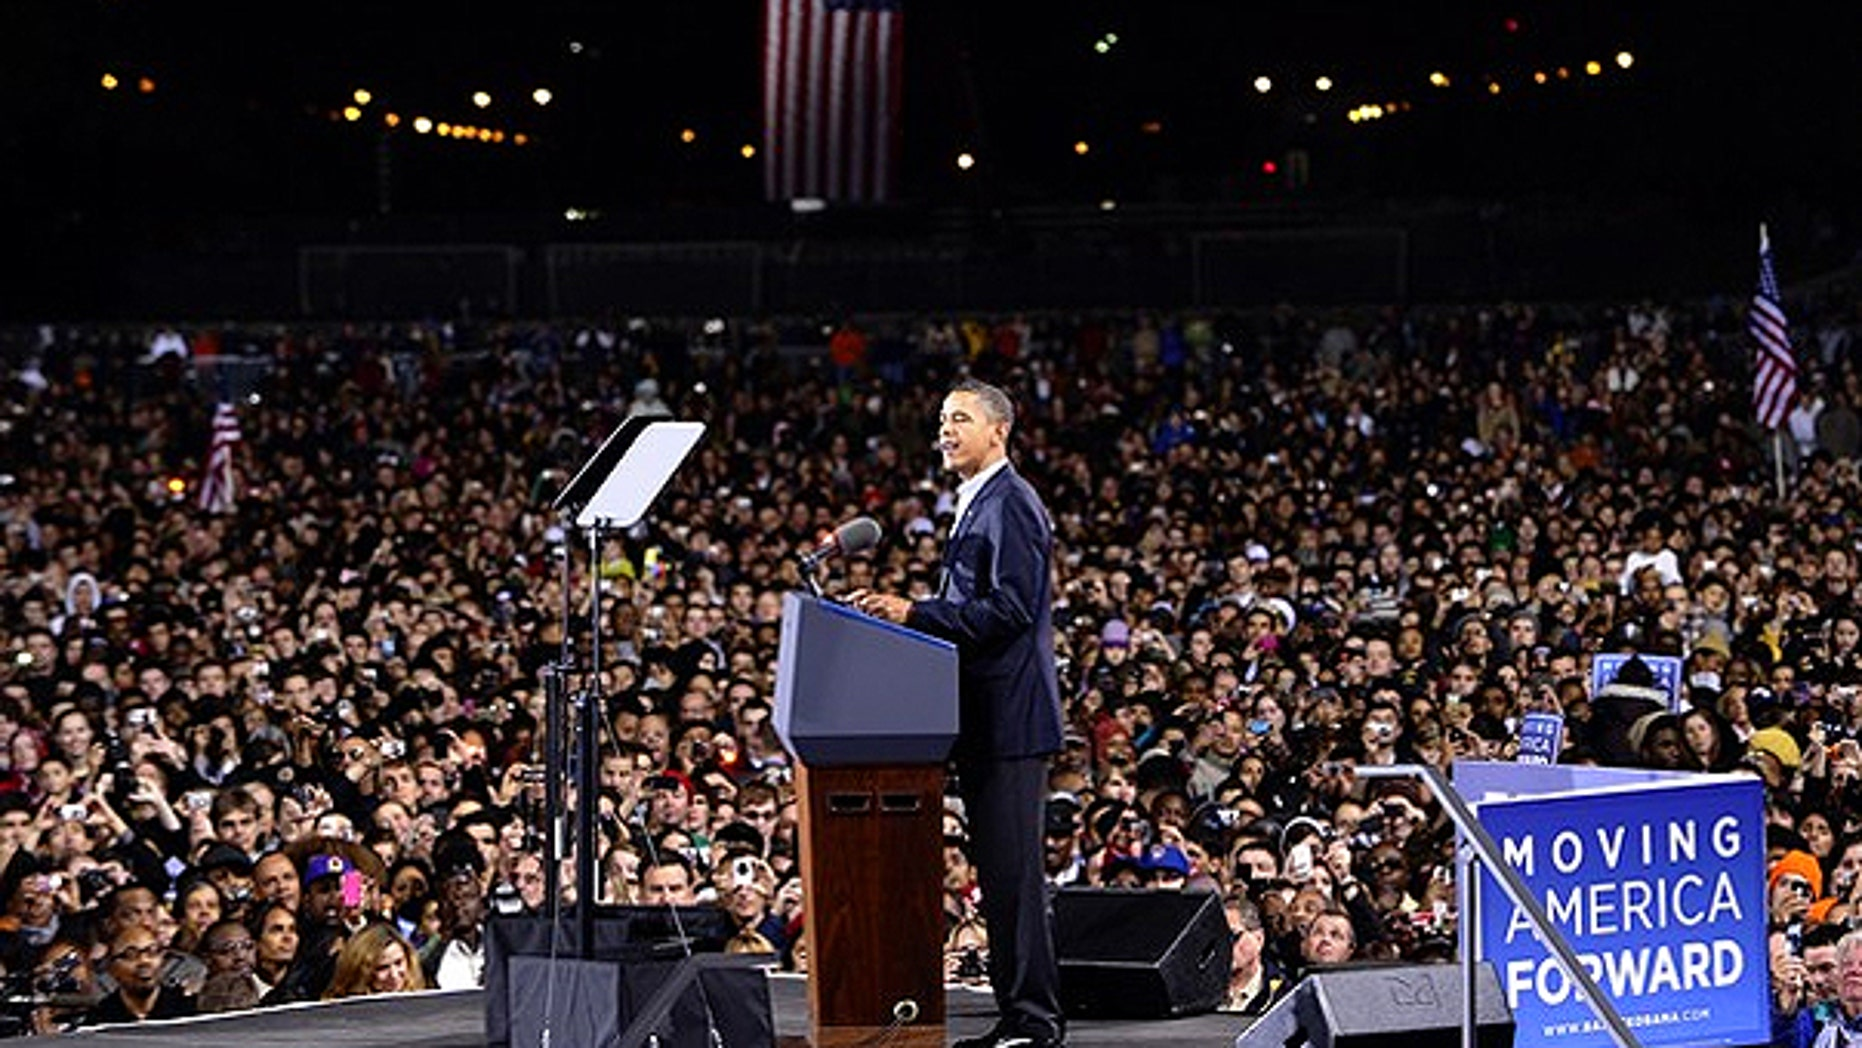 Oct. 30: President Obama speaks during a 'Moving America Forward' rally in Chicago, Ill.